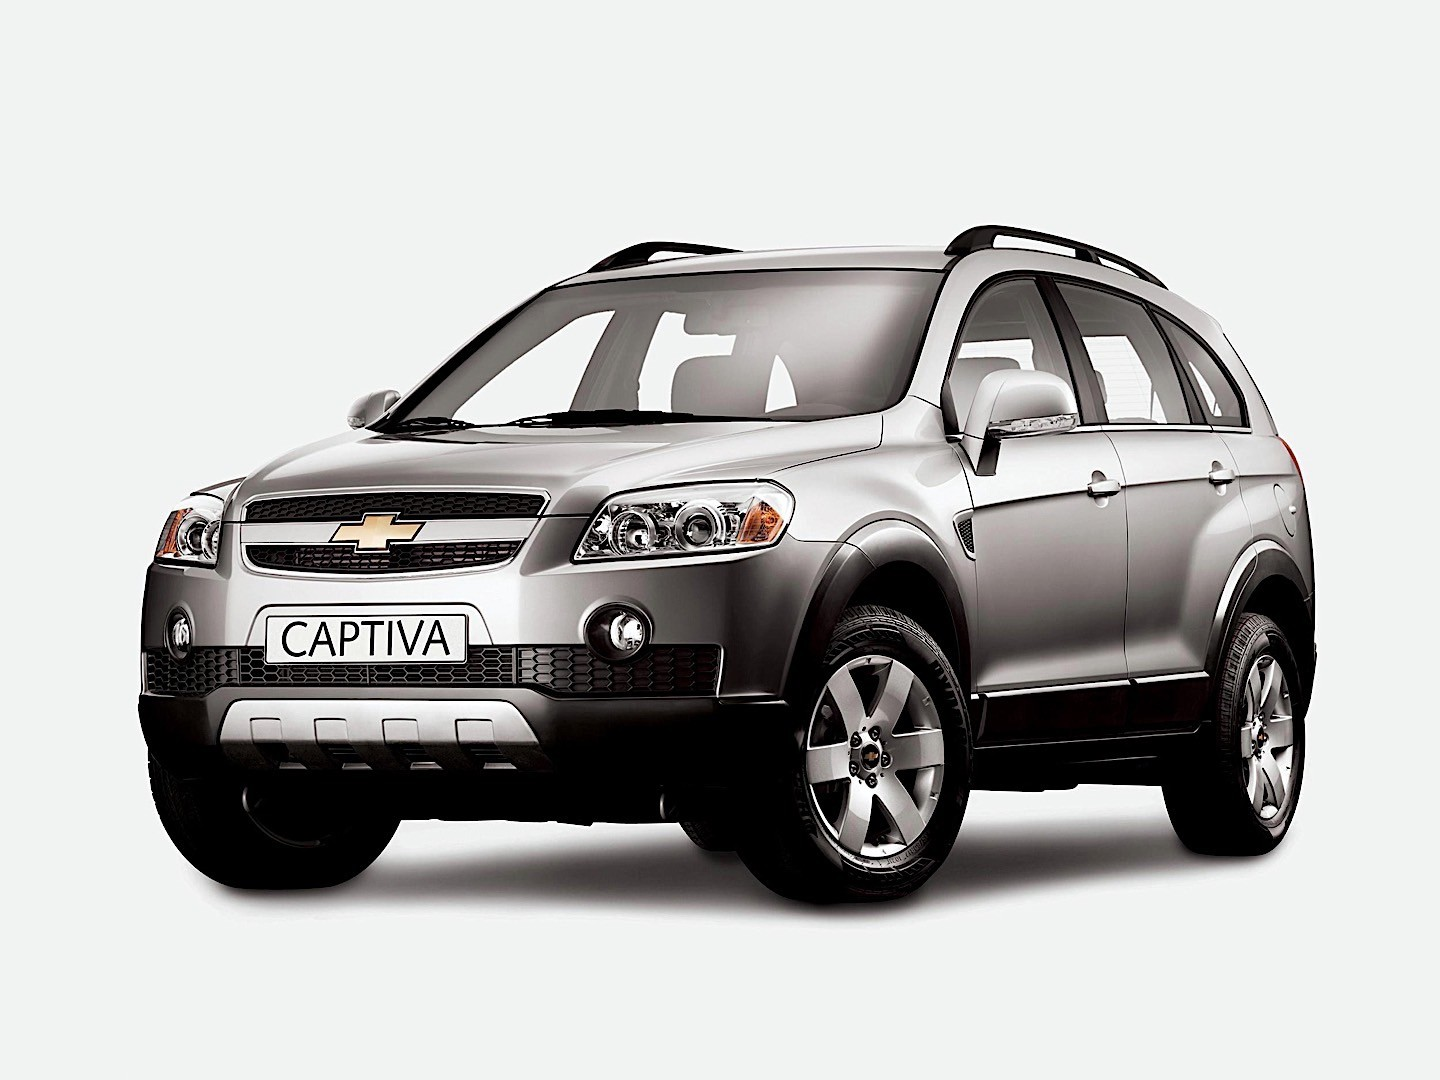 chevrolet captiva specs photos 2006 2007 2008 2009 2010 2011 autoevolution. Black Bedroom Furniture Sets. Home Design Ideas